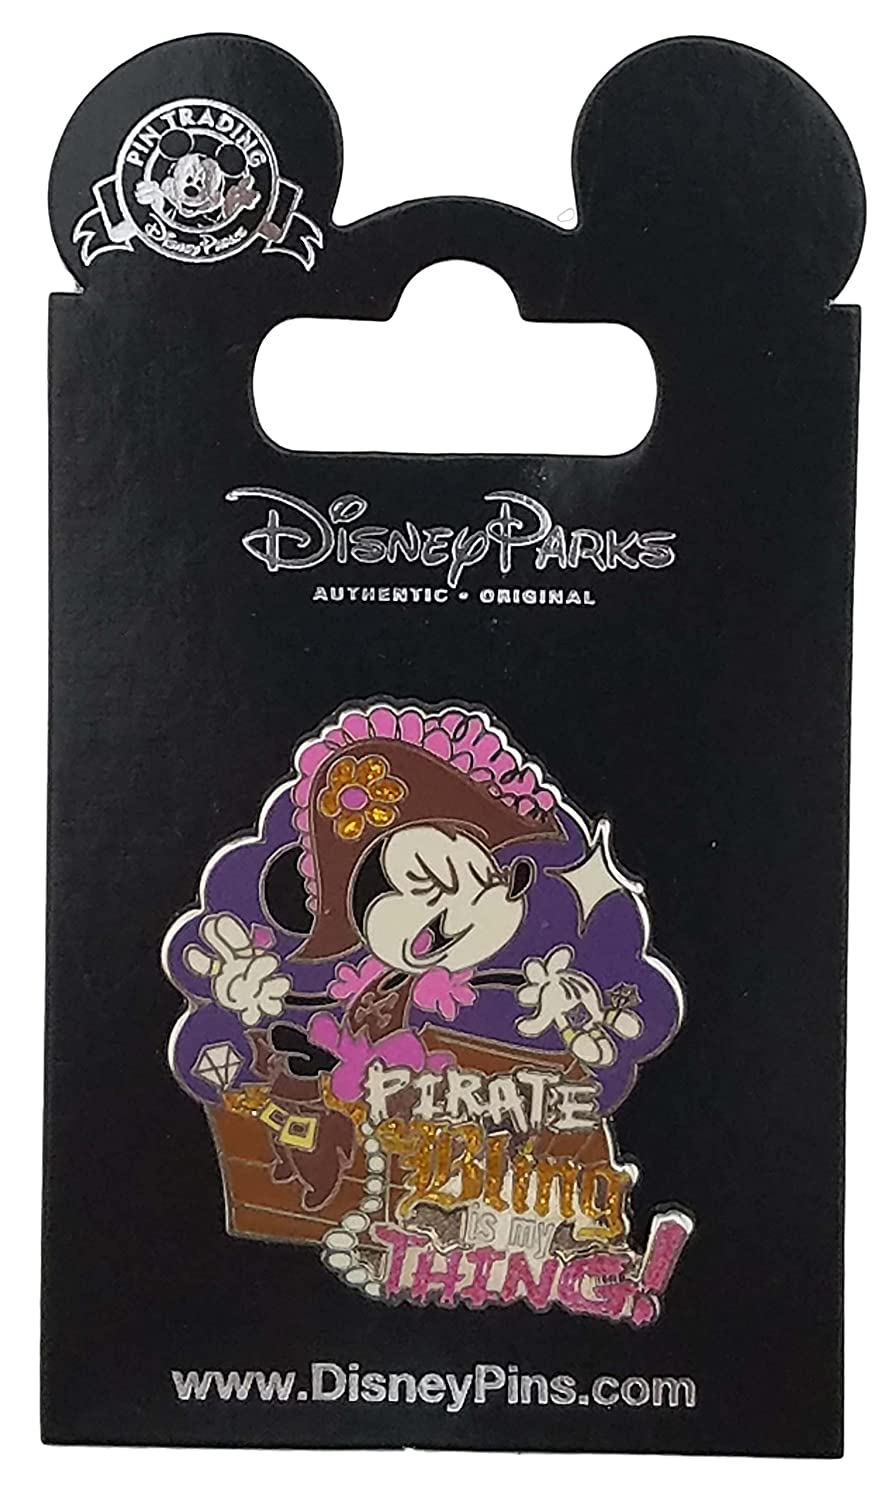 Disney Pin - Minnie Mouse - Pirate Bling is my Thing